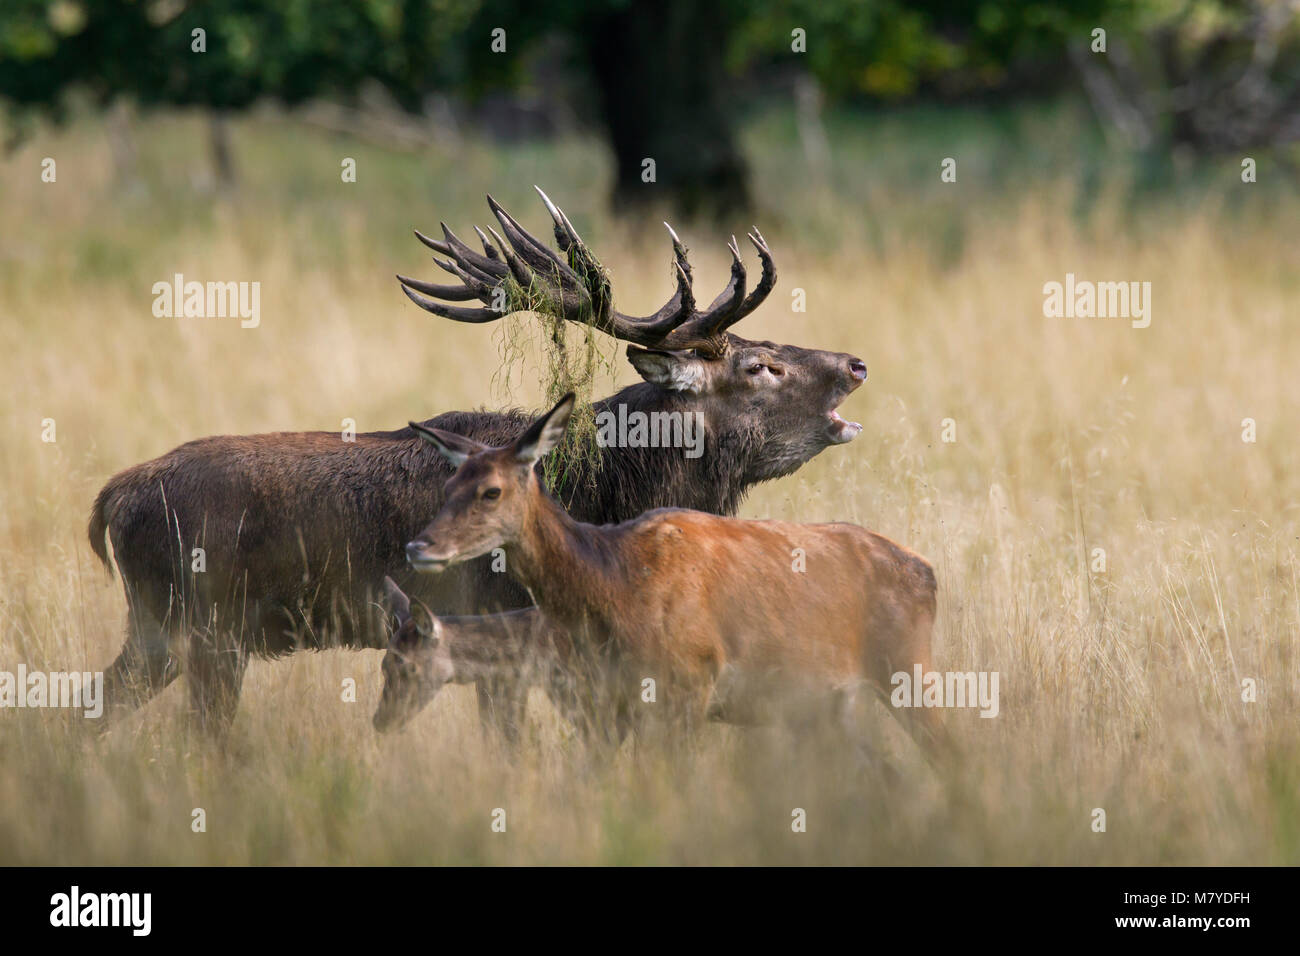 Red deer (Cervus elaphus) hinds and stag bellowing in grassland at forest's edge during the rut in autumn Stock Photo